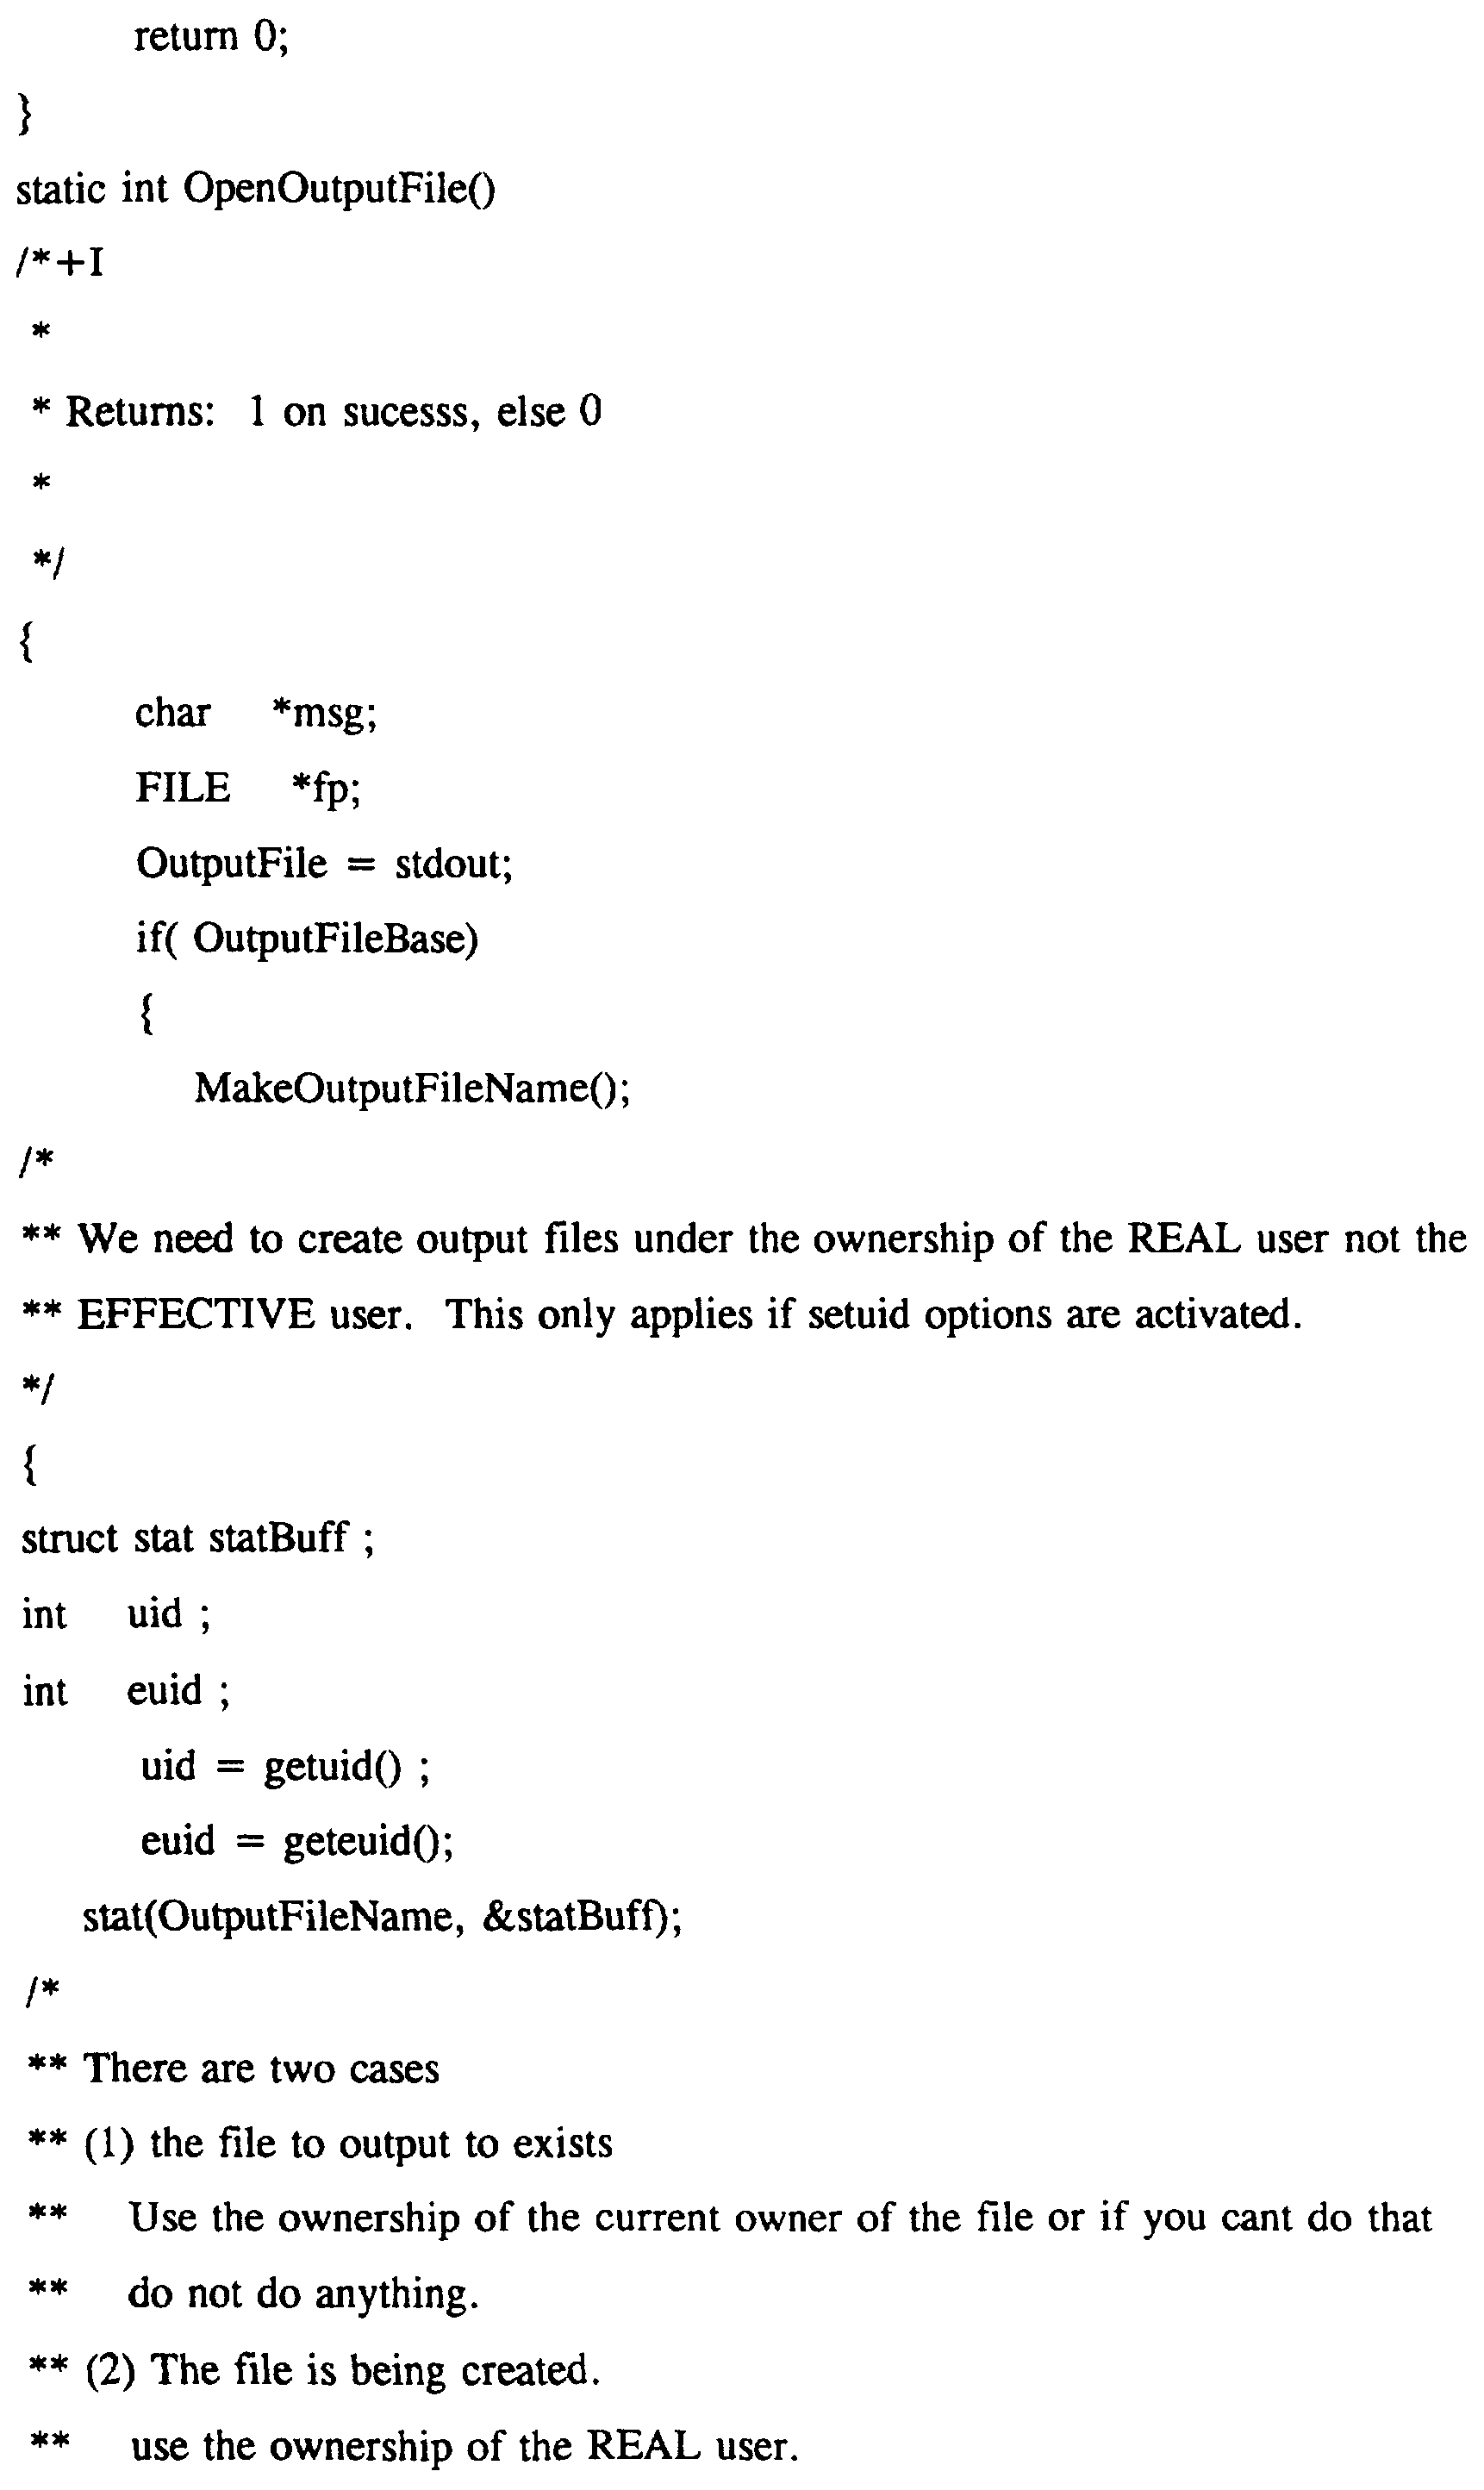 WO1997027559A1   Method of creating and searching a molecular